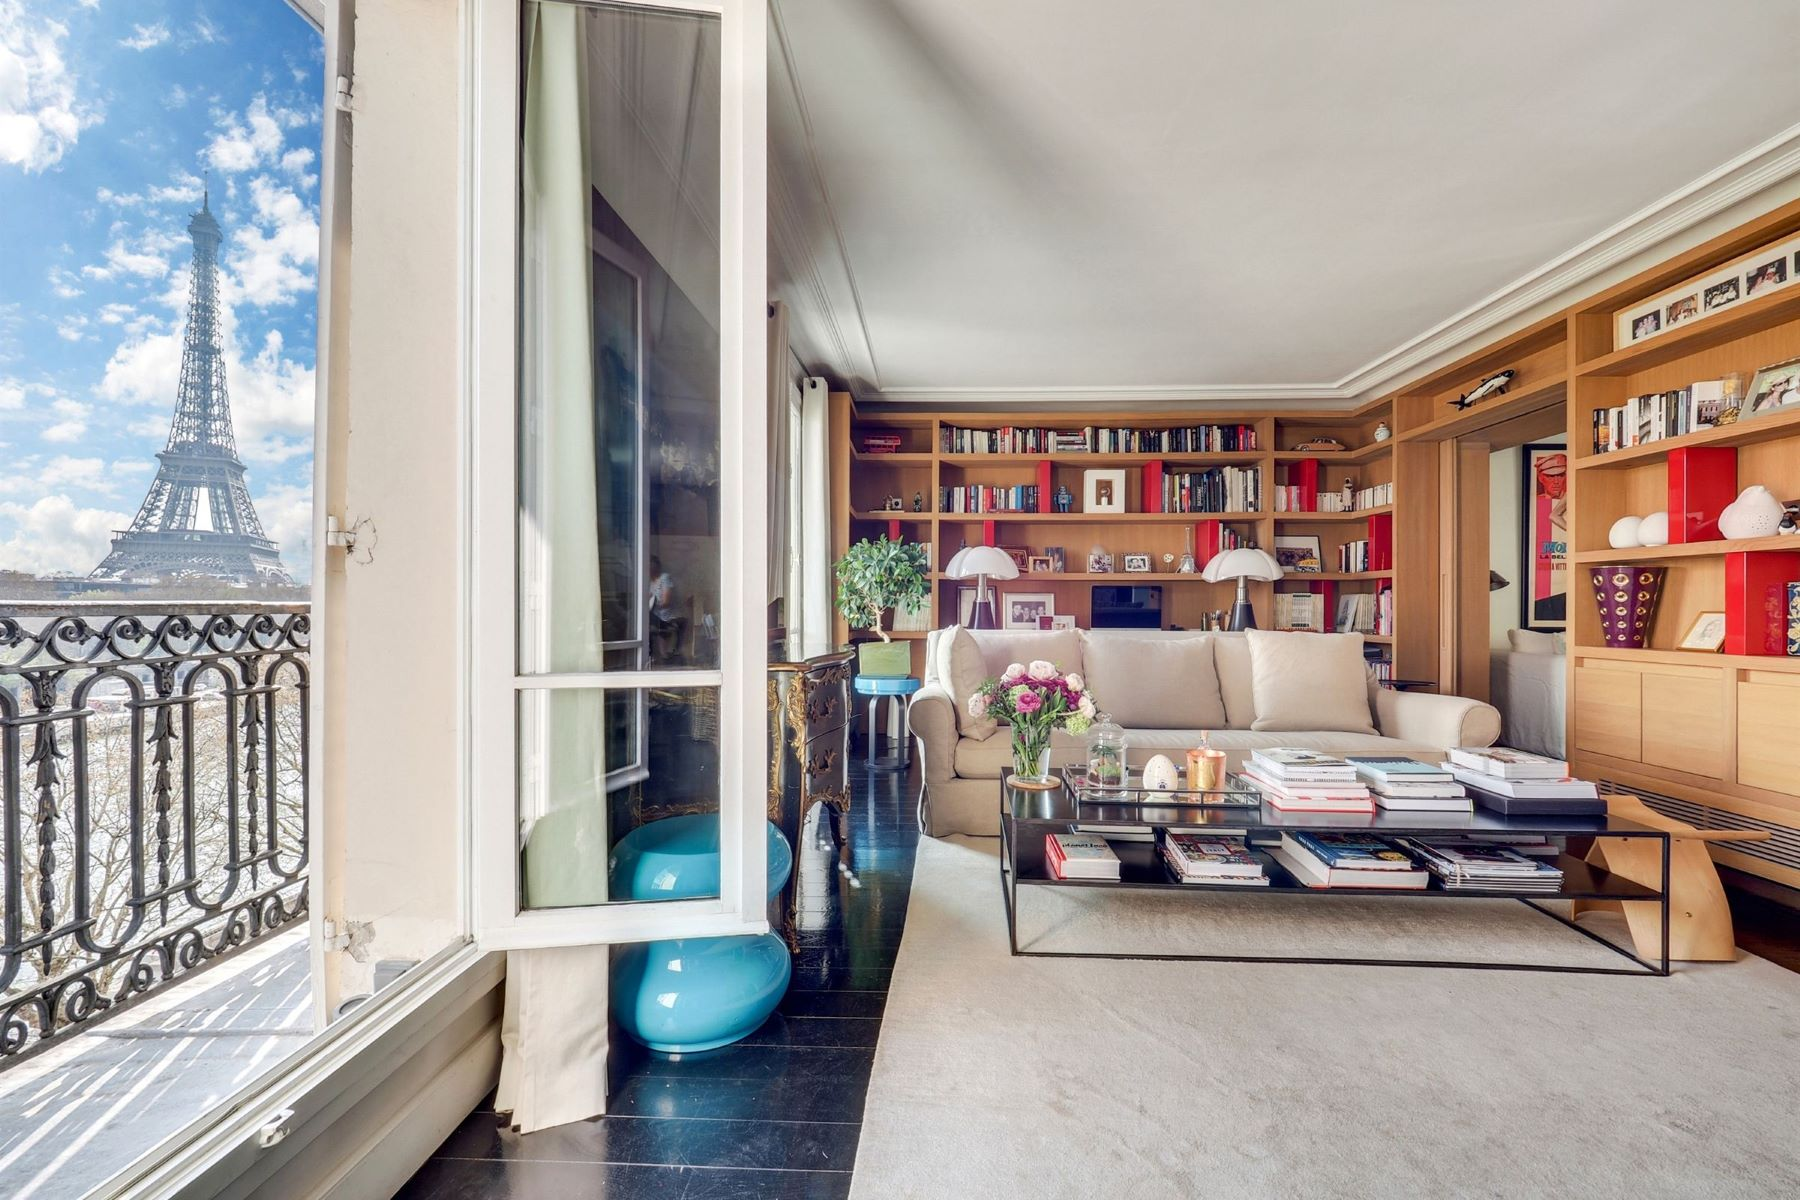 Duplex Homes for Sale at Alma / Marceau : Magnificent duplex with balcony overlooking the Seine Paris, Ile-De-France 75016 France